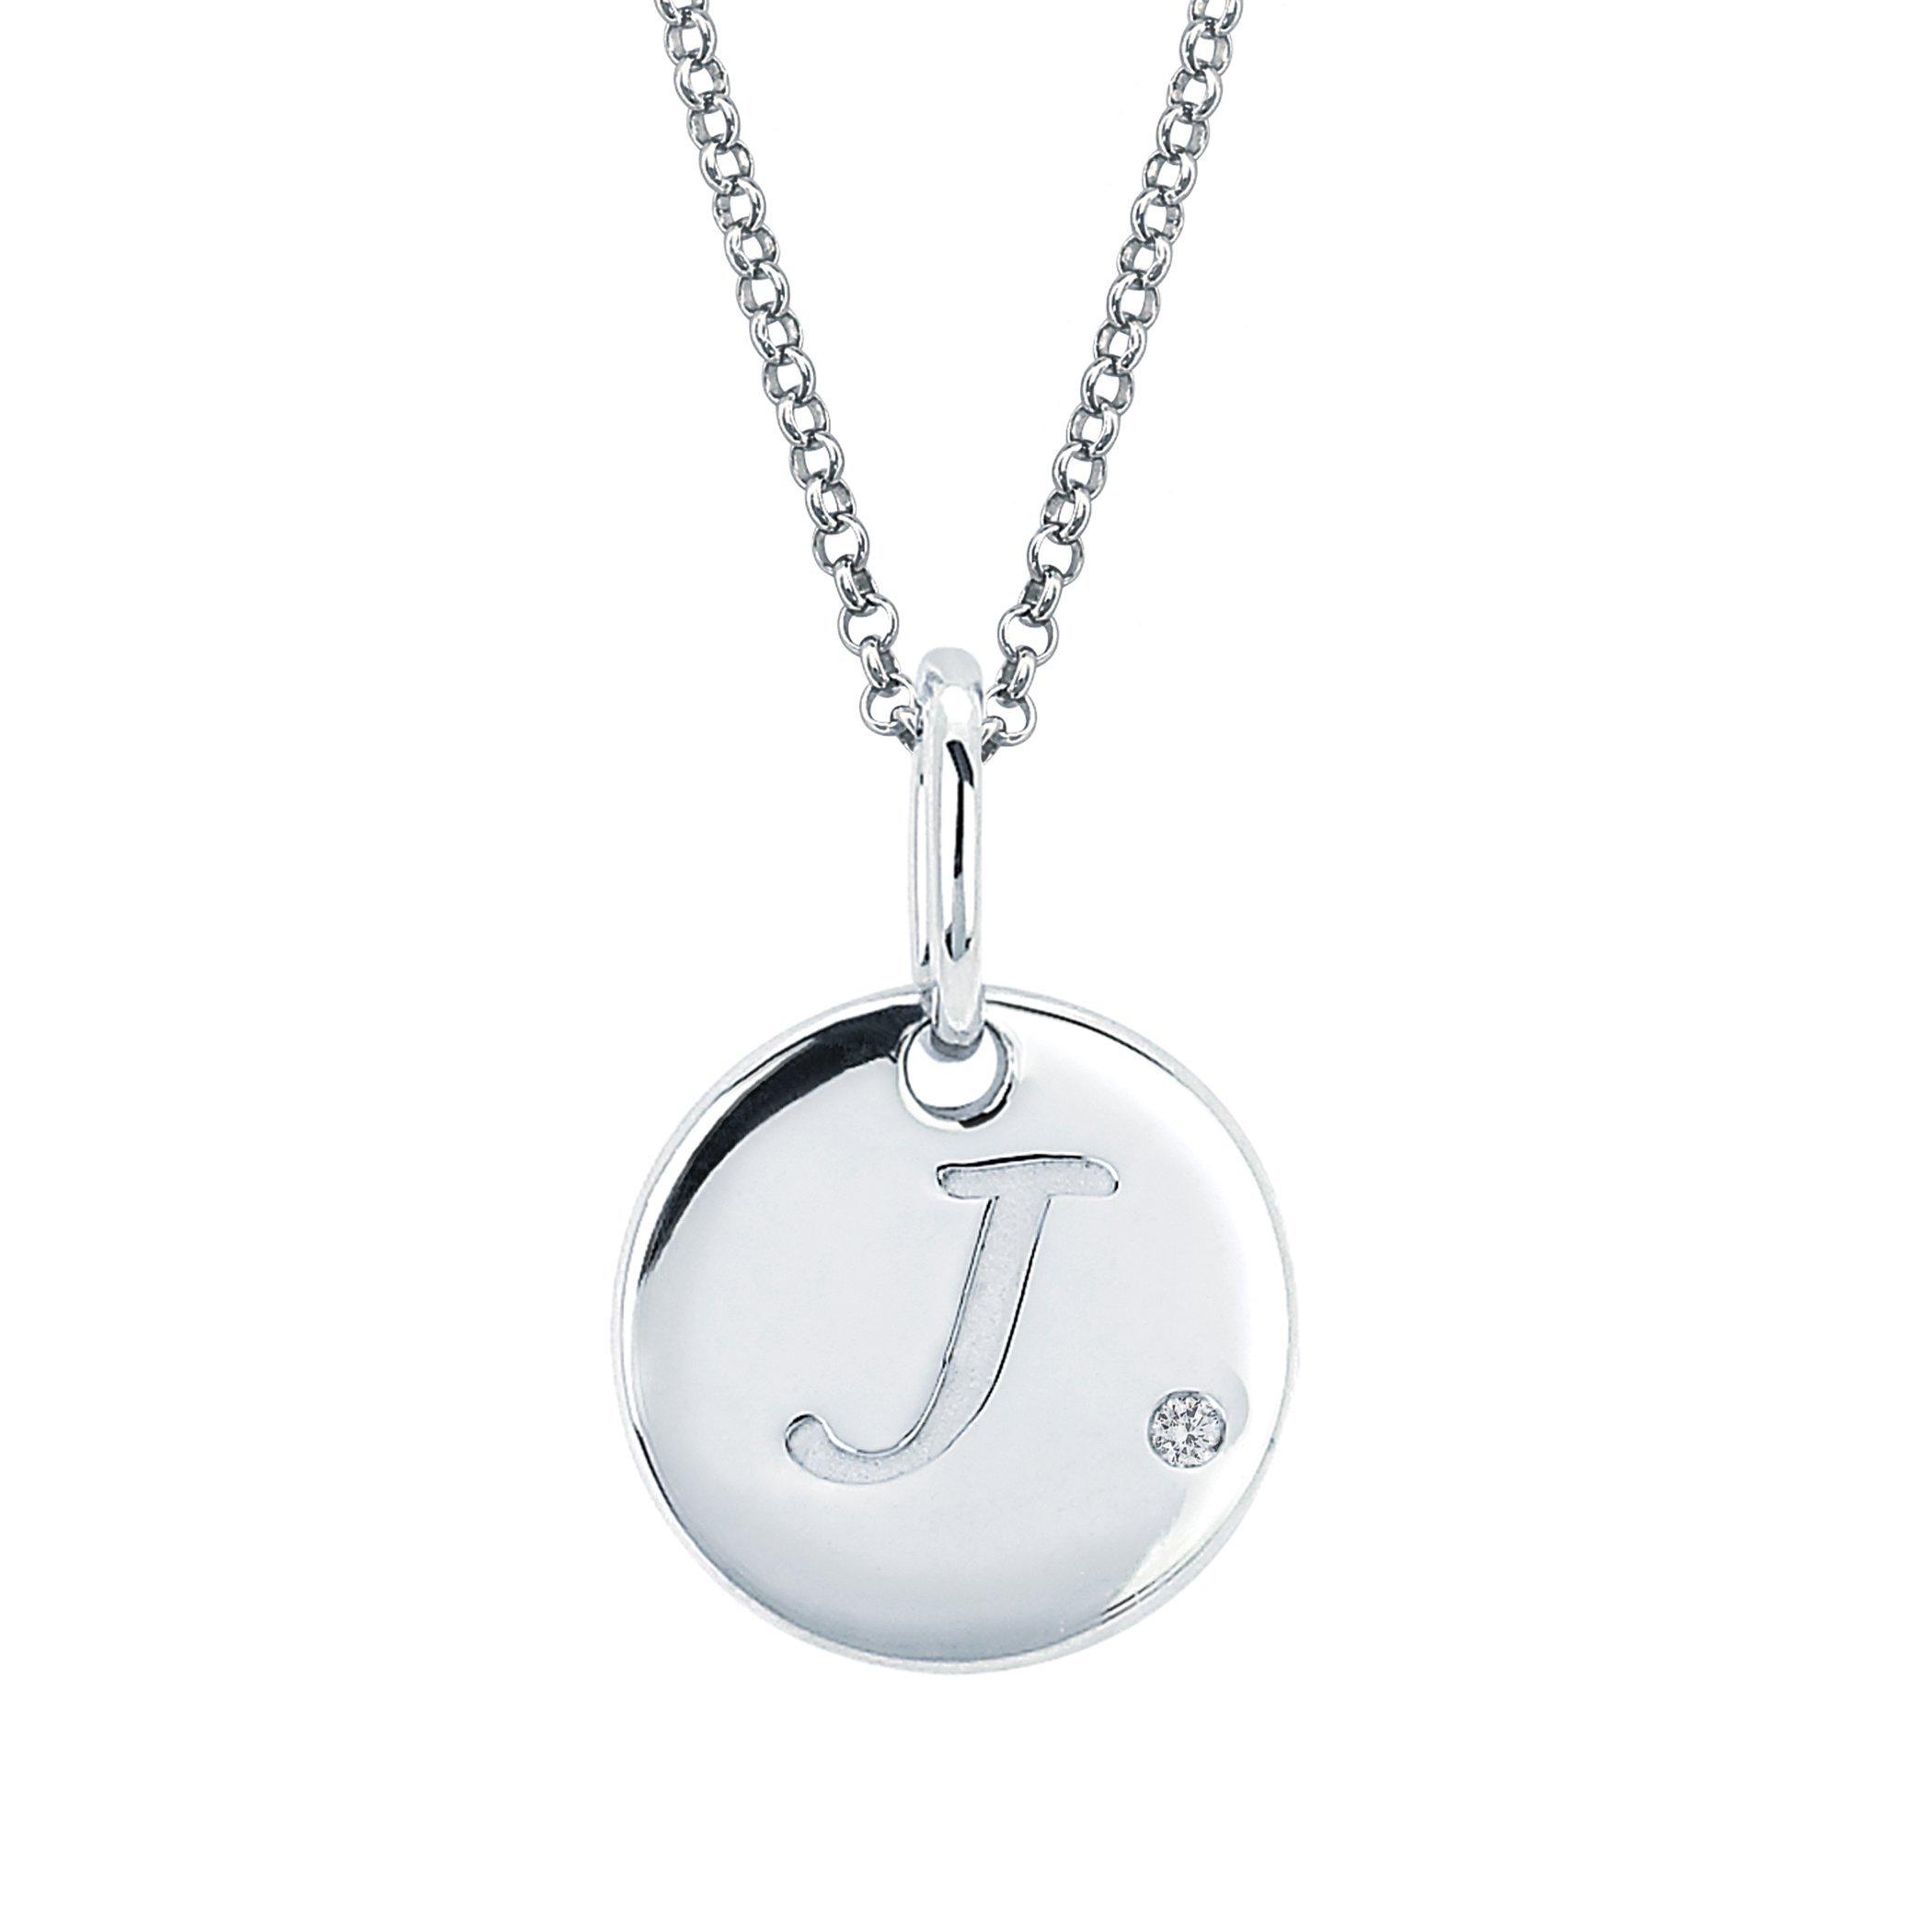 "Little Diva Diamonds 925 Sterling Silver .01 Cttw. Diamond Accent Disc Initial Pendant Necklace 16"" Chain Girls"